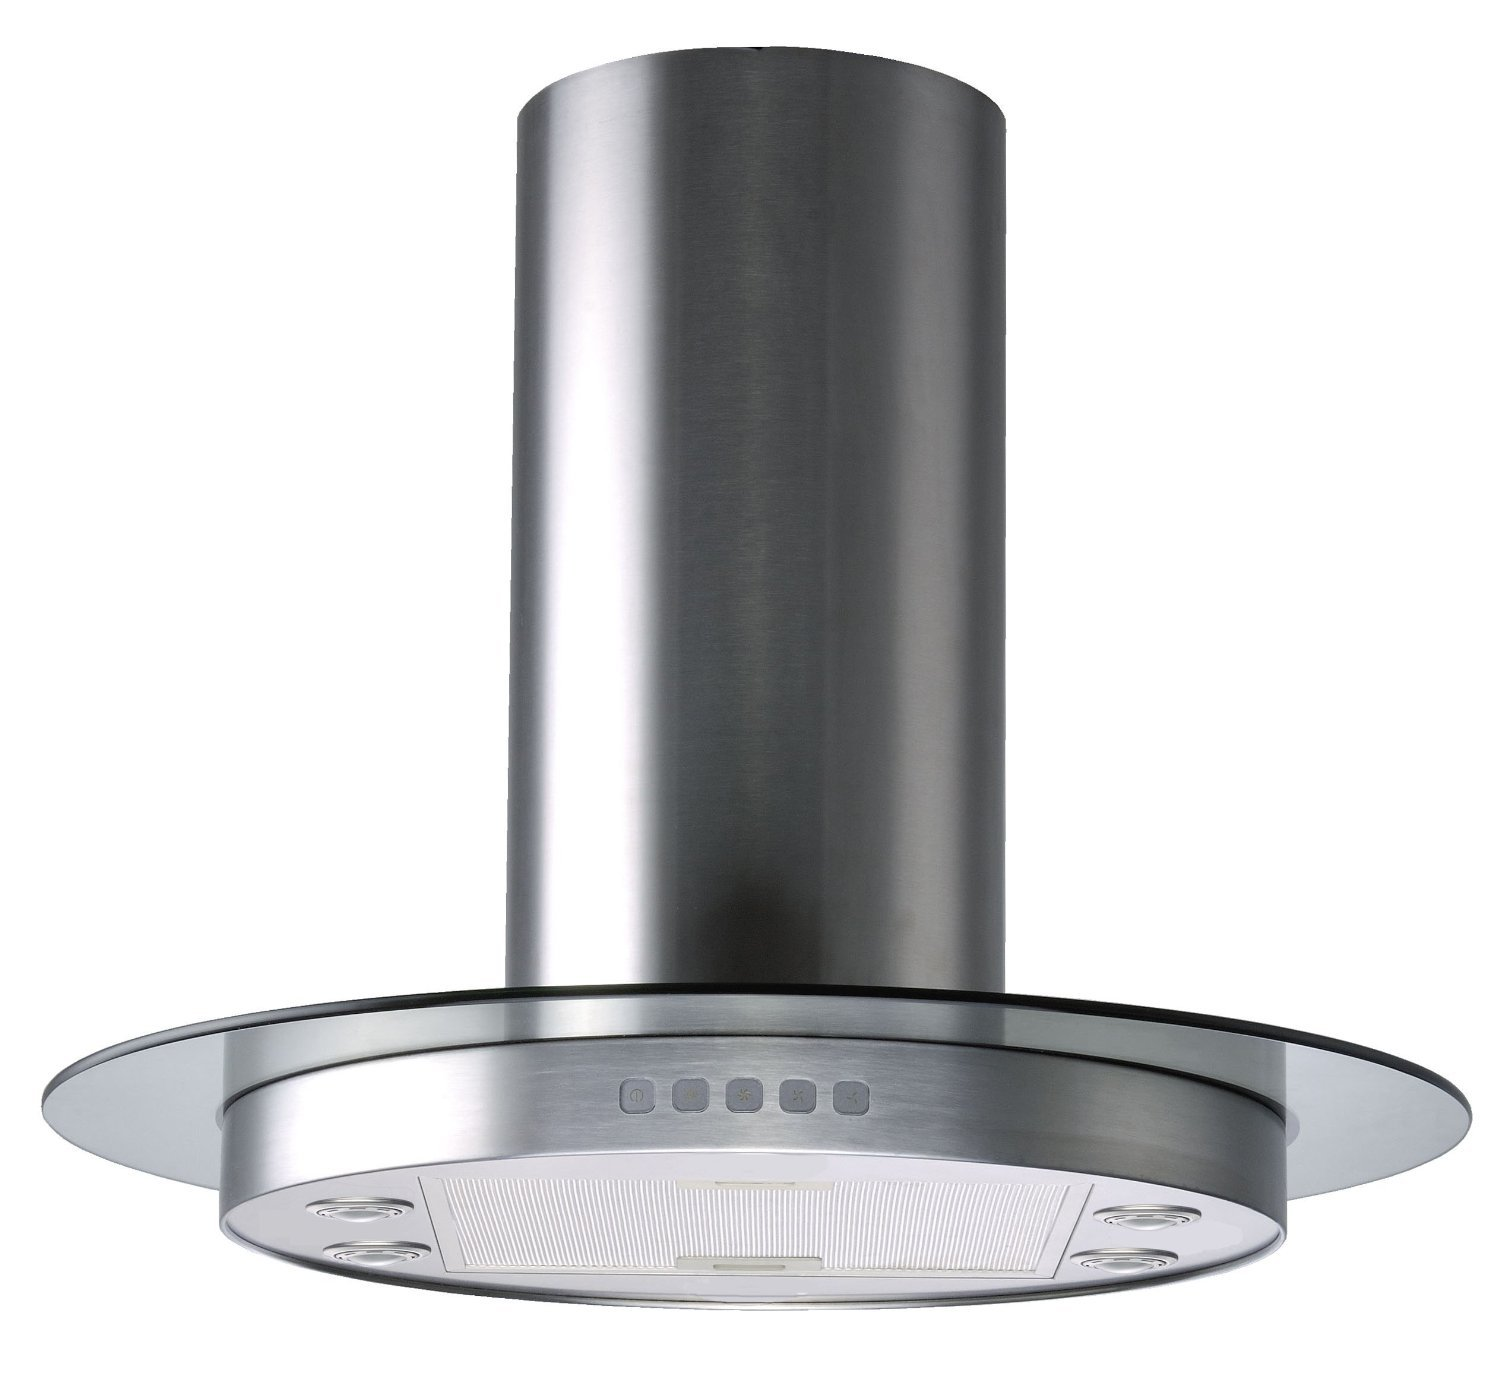 Amazon Kitchen Bath Collection HRG90 LED Circular Stainless